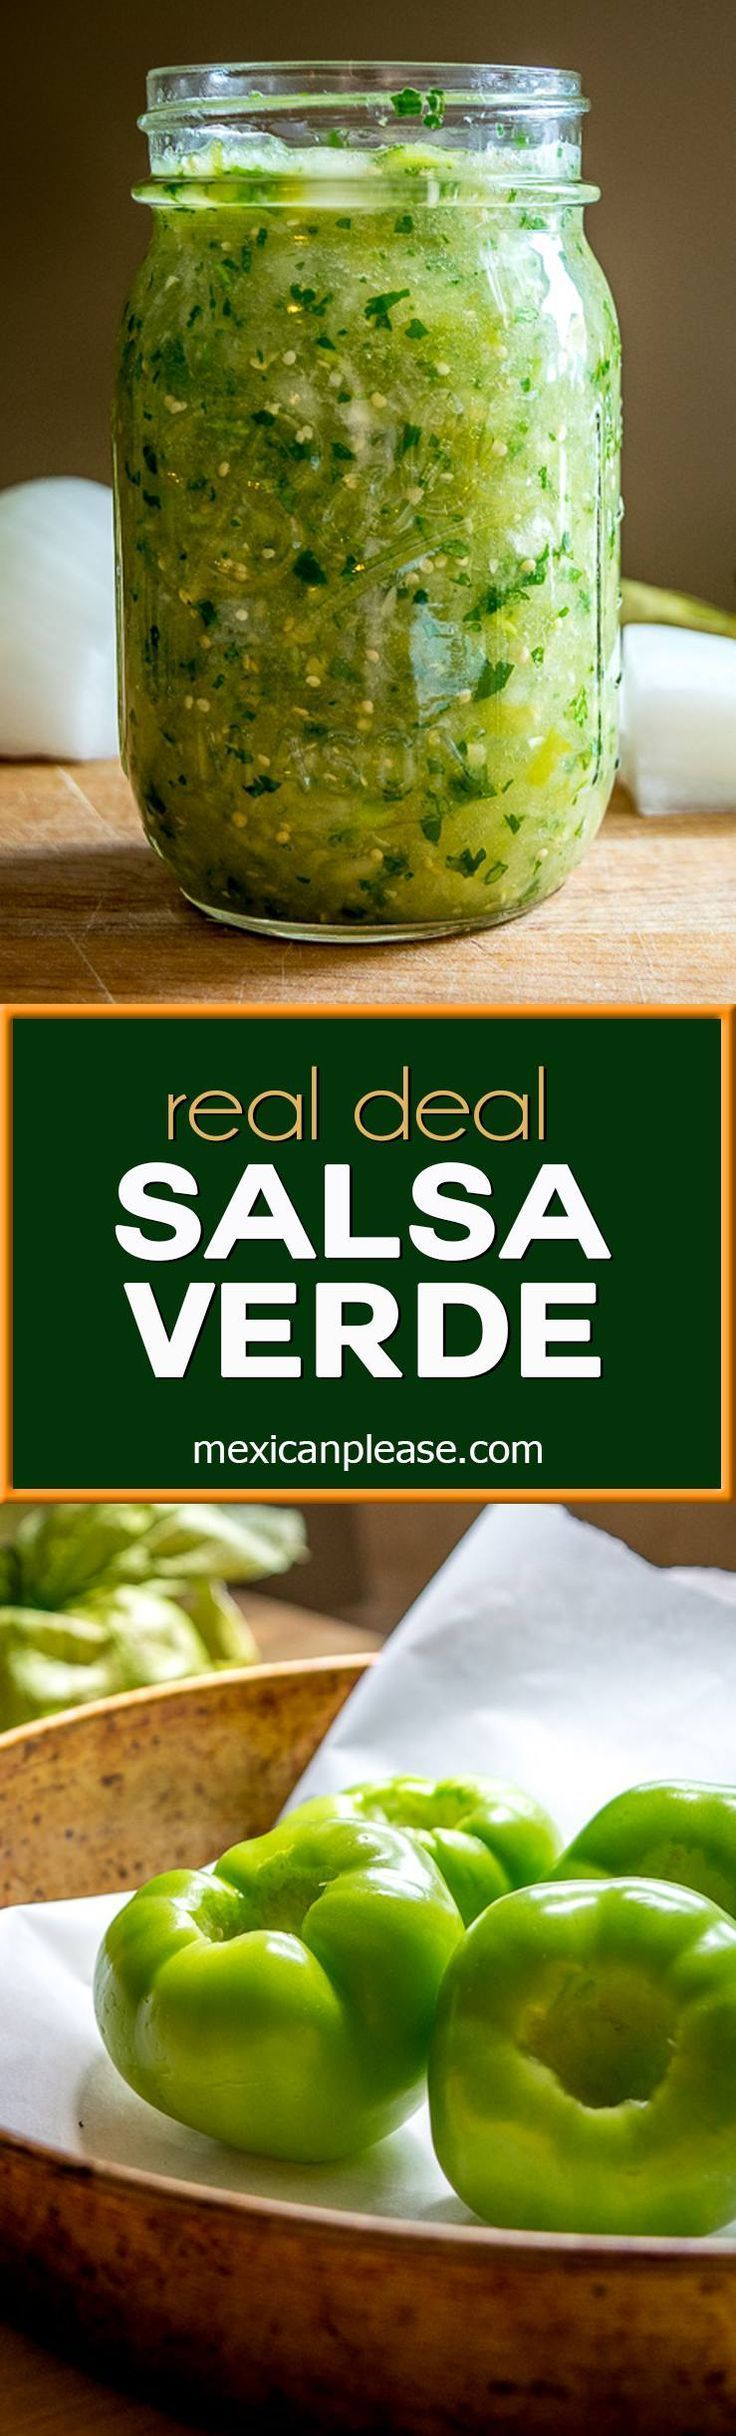 A homemade green salsa can transform eggs, carnitas, and enchiladas into something otherworldly.  Getting good at whipping up this authentic Salsa Verde opens up infinite possibilities!  mexicanplease.com